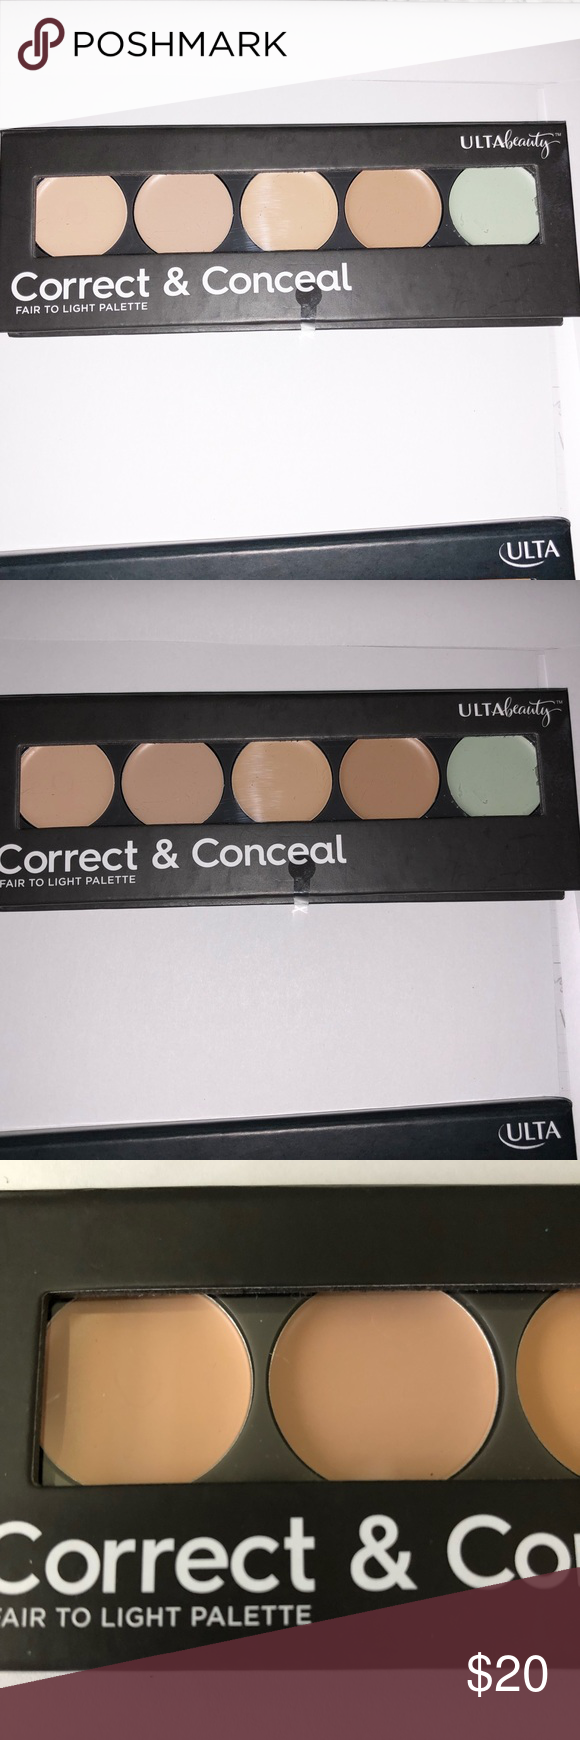 ULTA Correct & Conceal NWT (With images) Skin